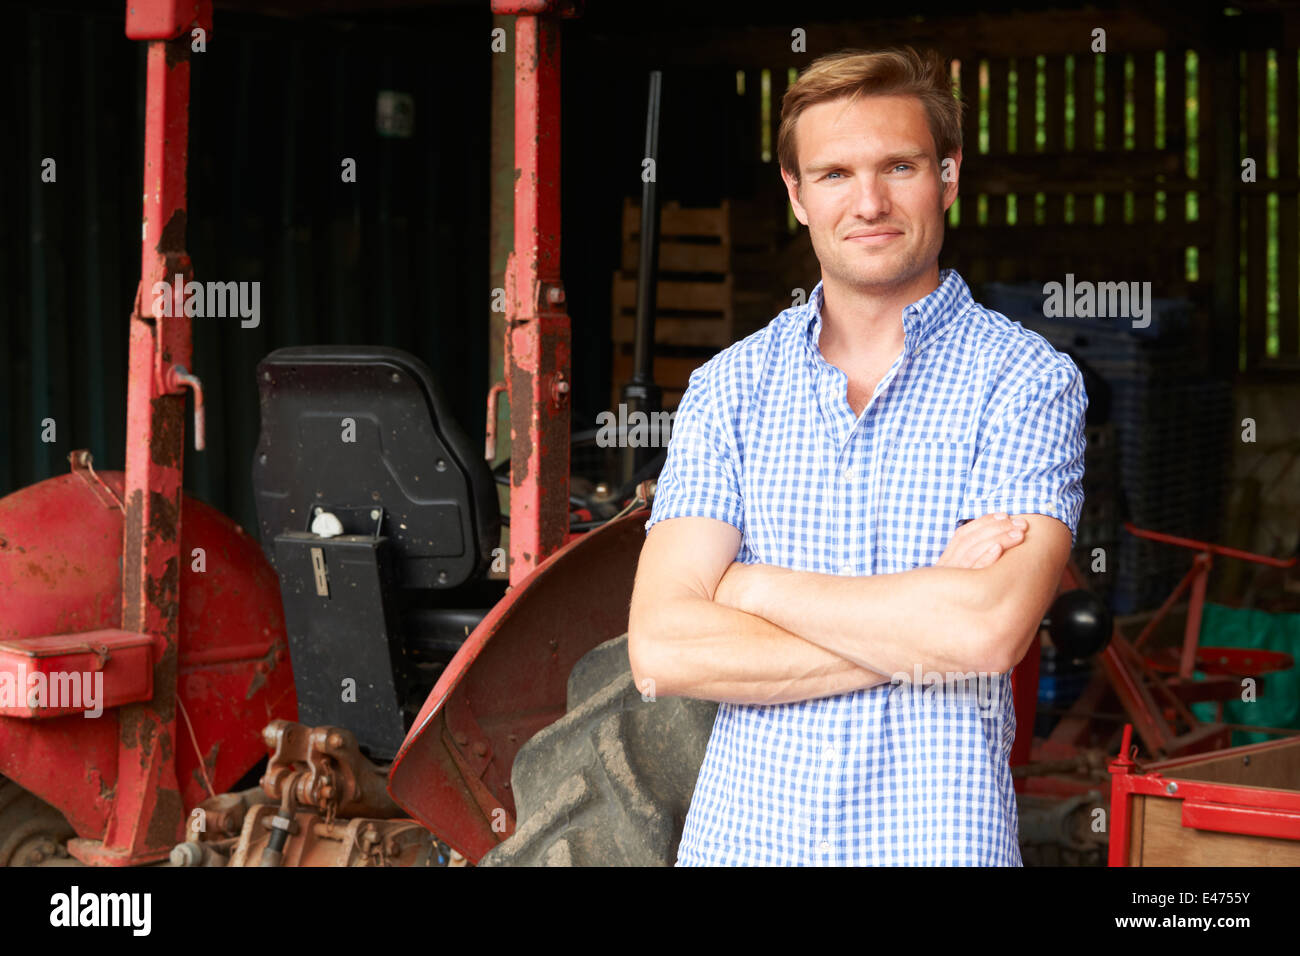 Farmer Standing Next to Old Fashioned Tracteur In Barn Photo Stock